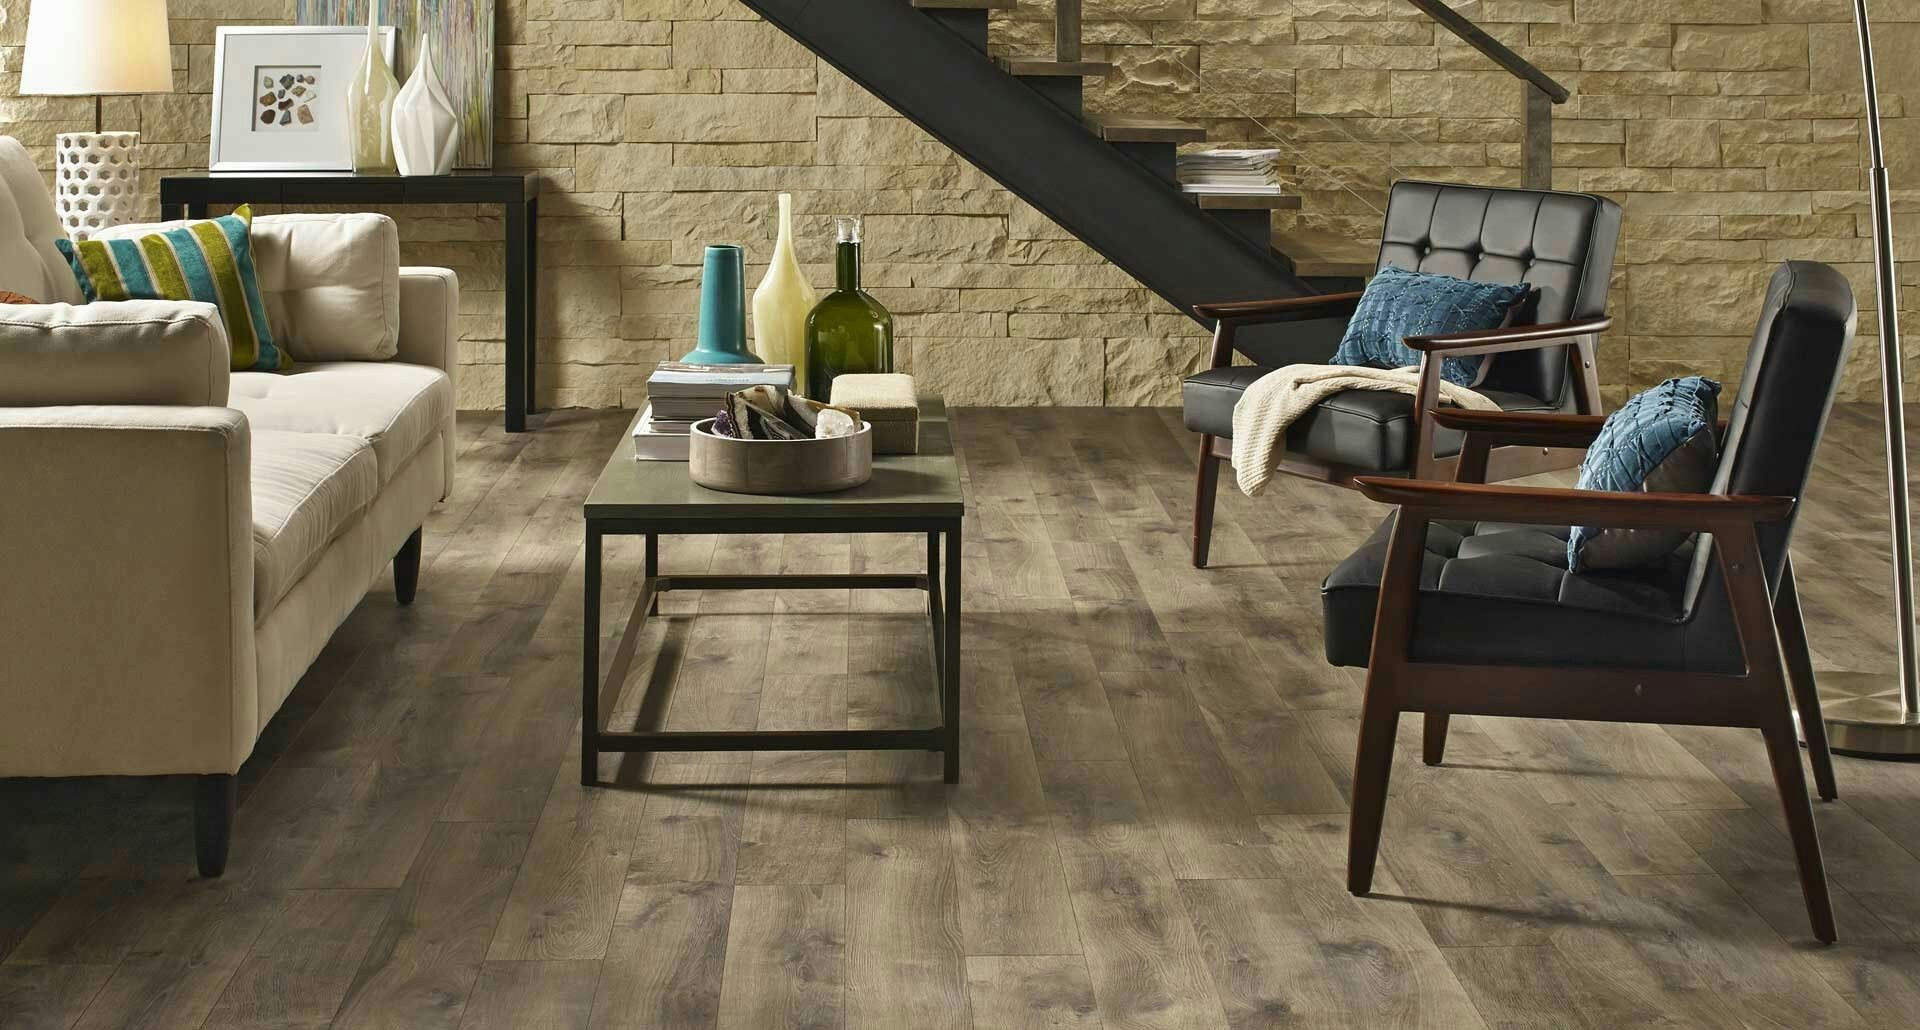 Southern Grey Oak Ergoxp 10mm W 2mm Attached Underlayment Med Misty Beige Oak Matte 6 14 X47 25 1 Pergo Flooring Oak Laminate Flooring Grey Laminate Flooring